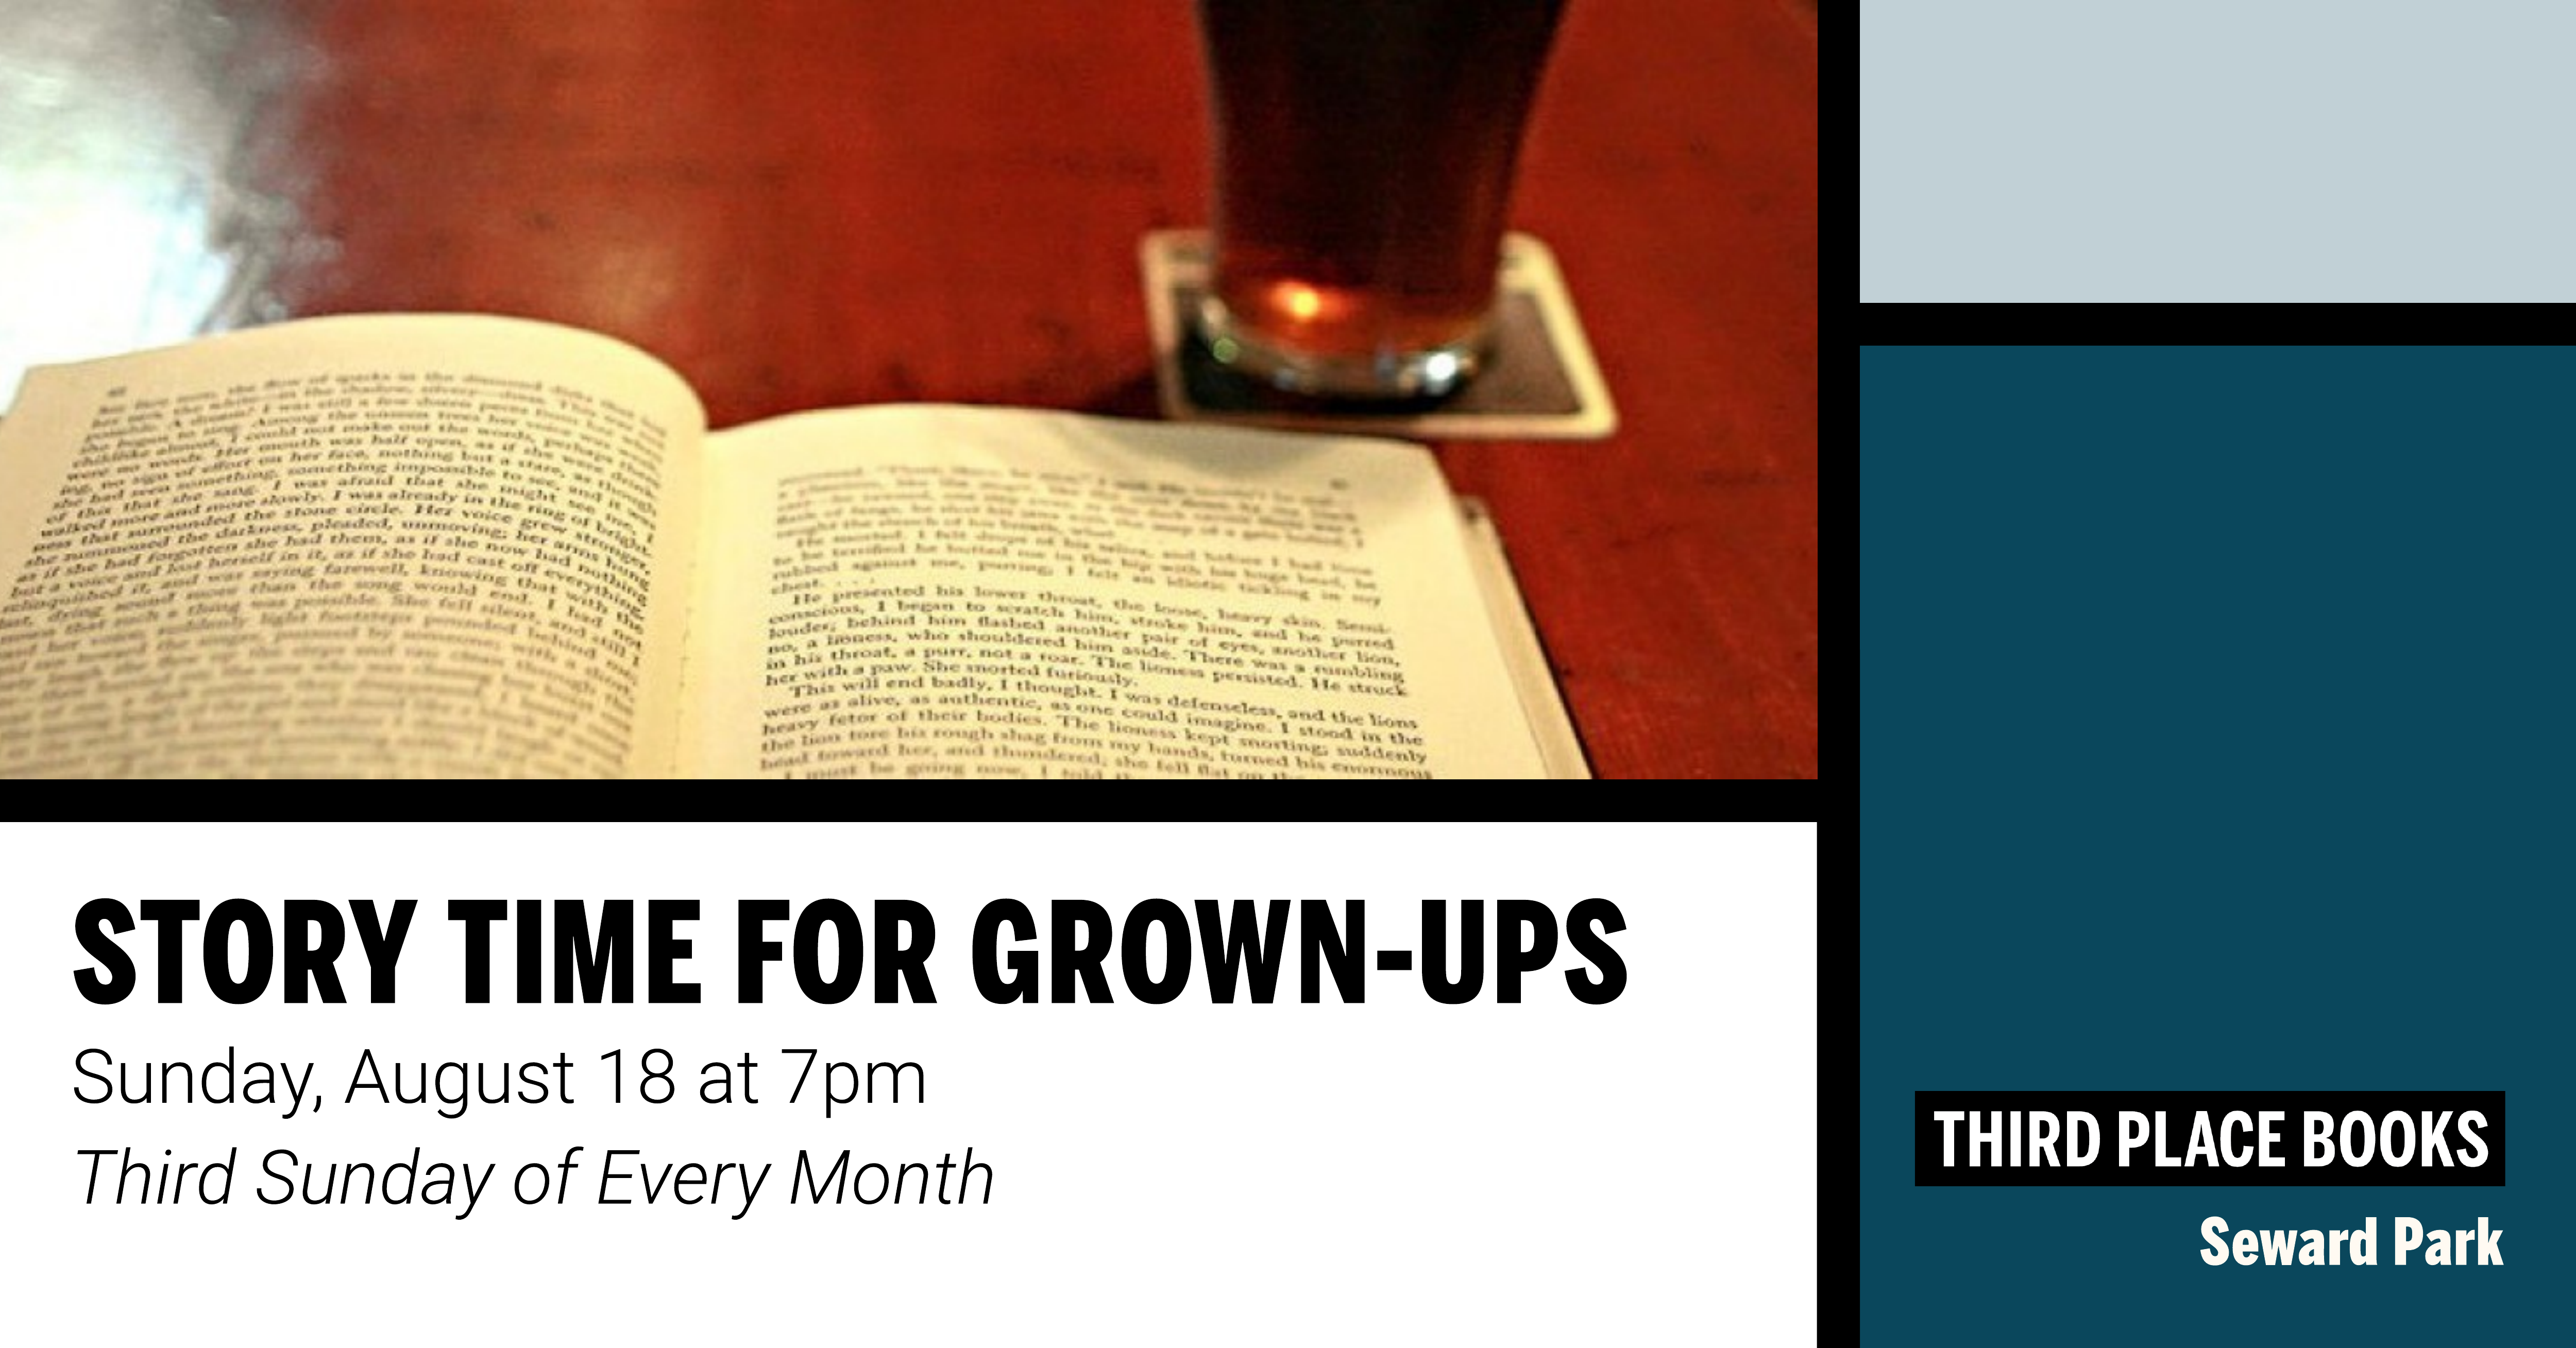 Story Time for Grown Ups on Sunday, August 18 at 7pm